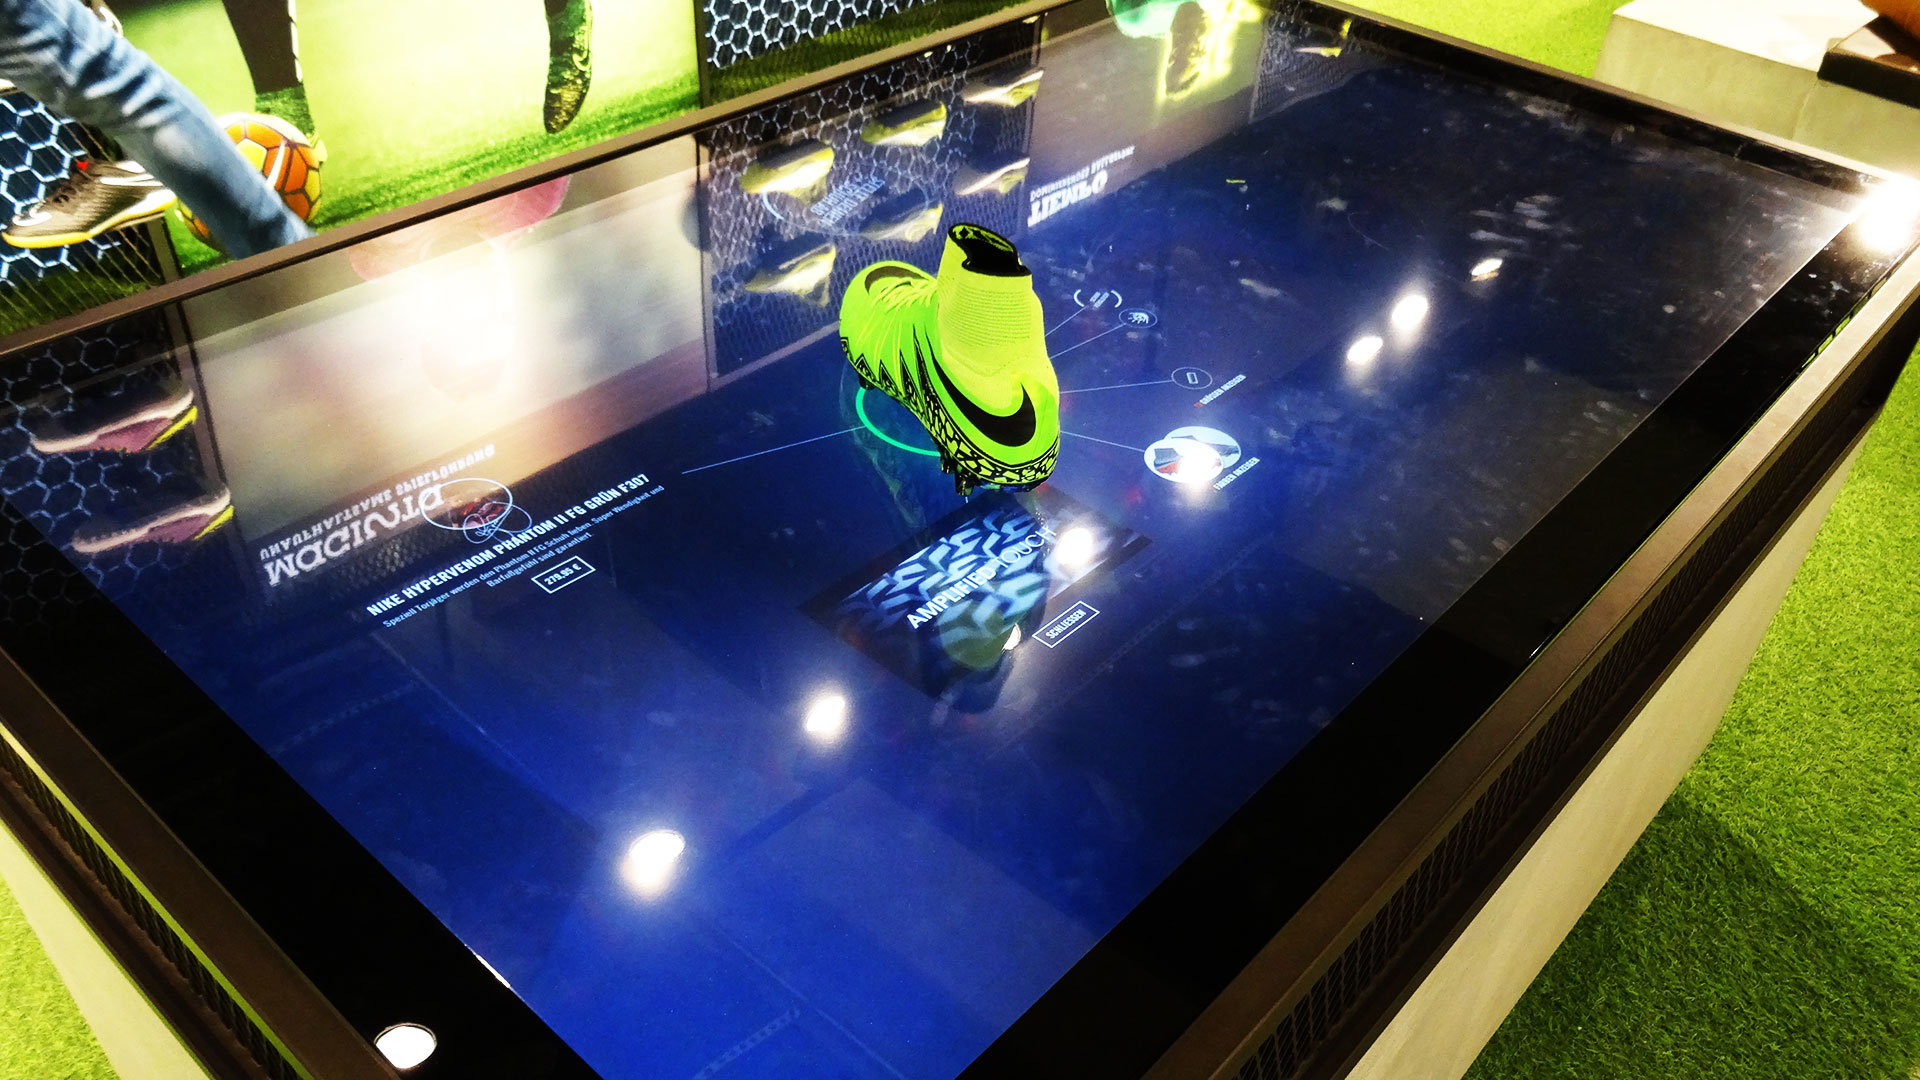 nike digital retail experience shoe information on multitouch table with rfid